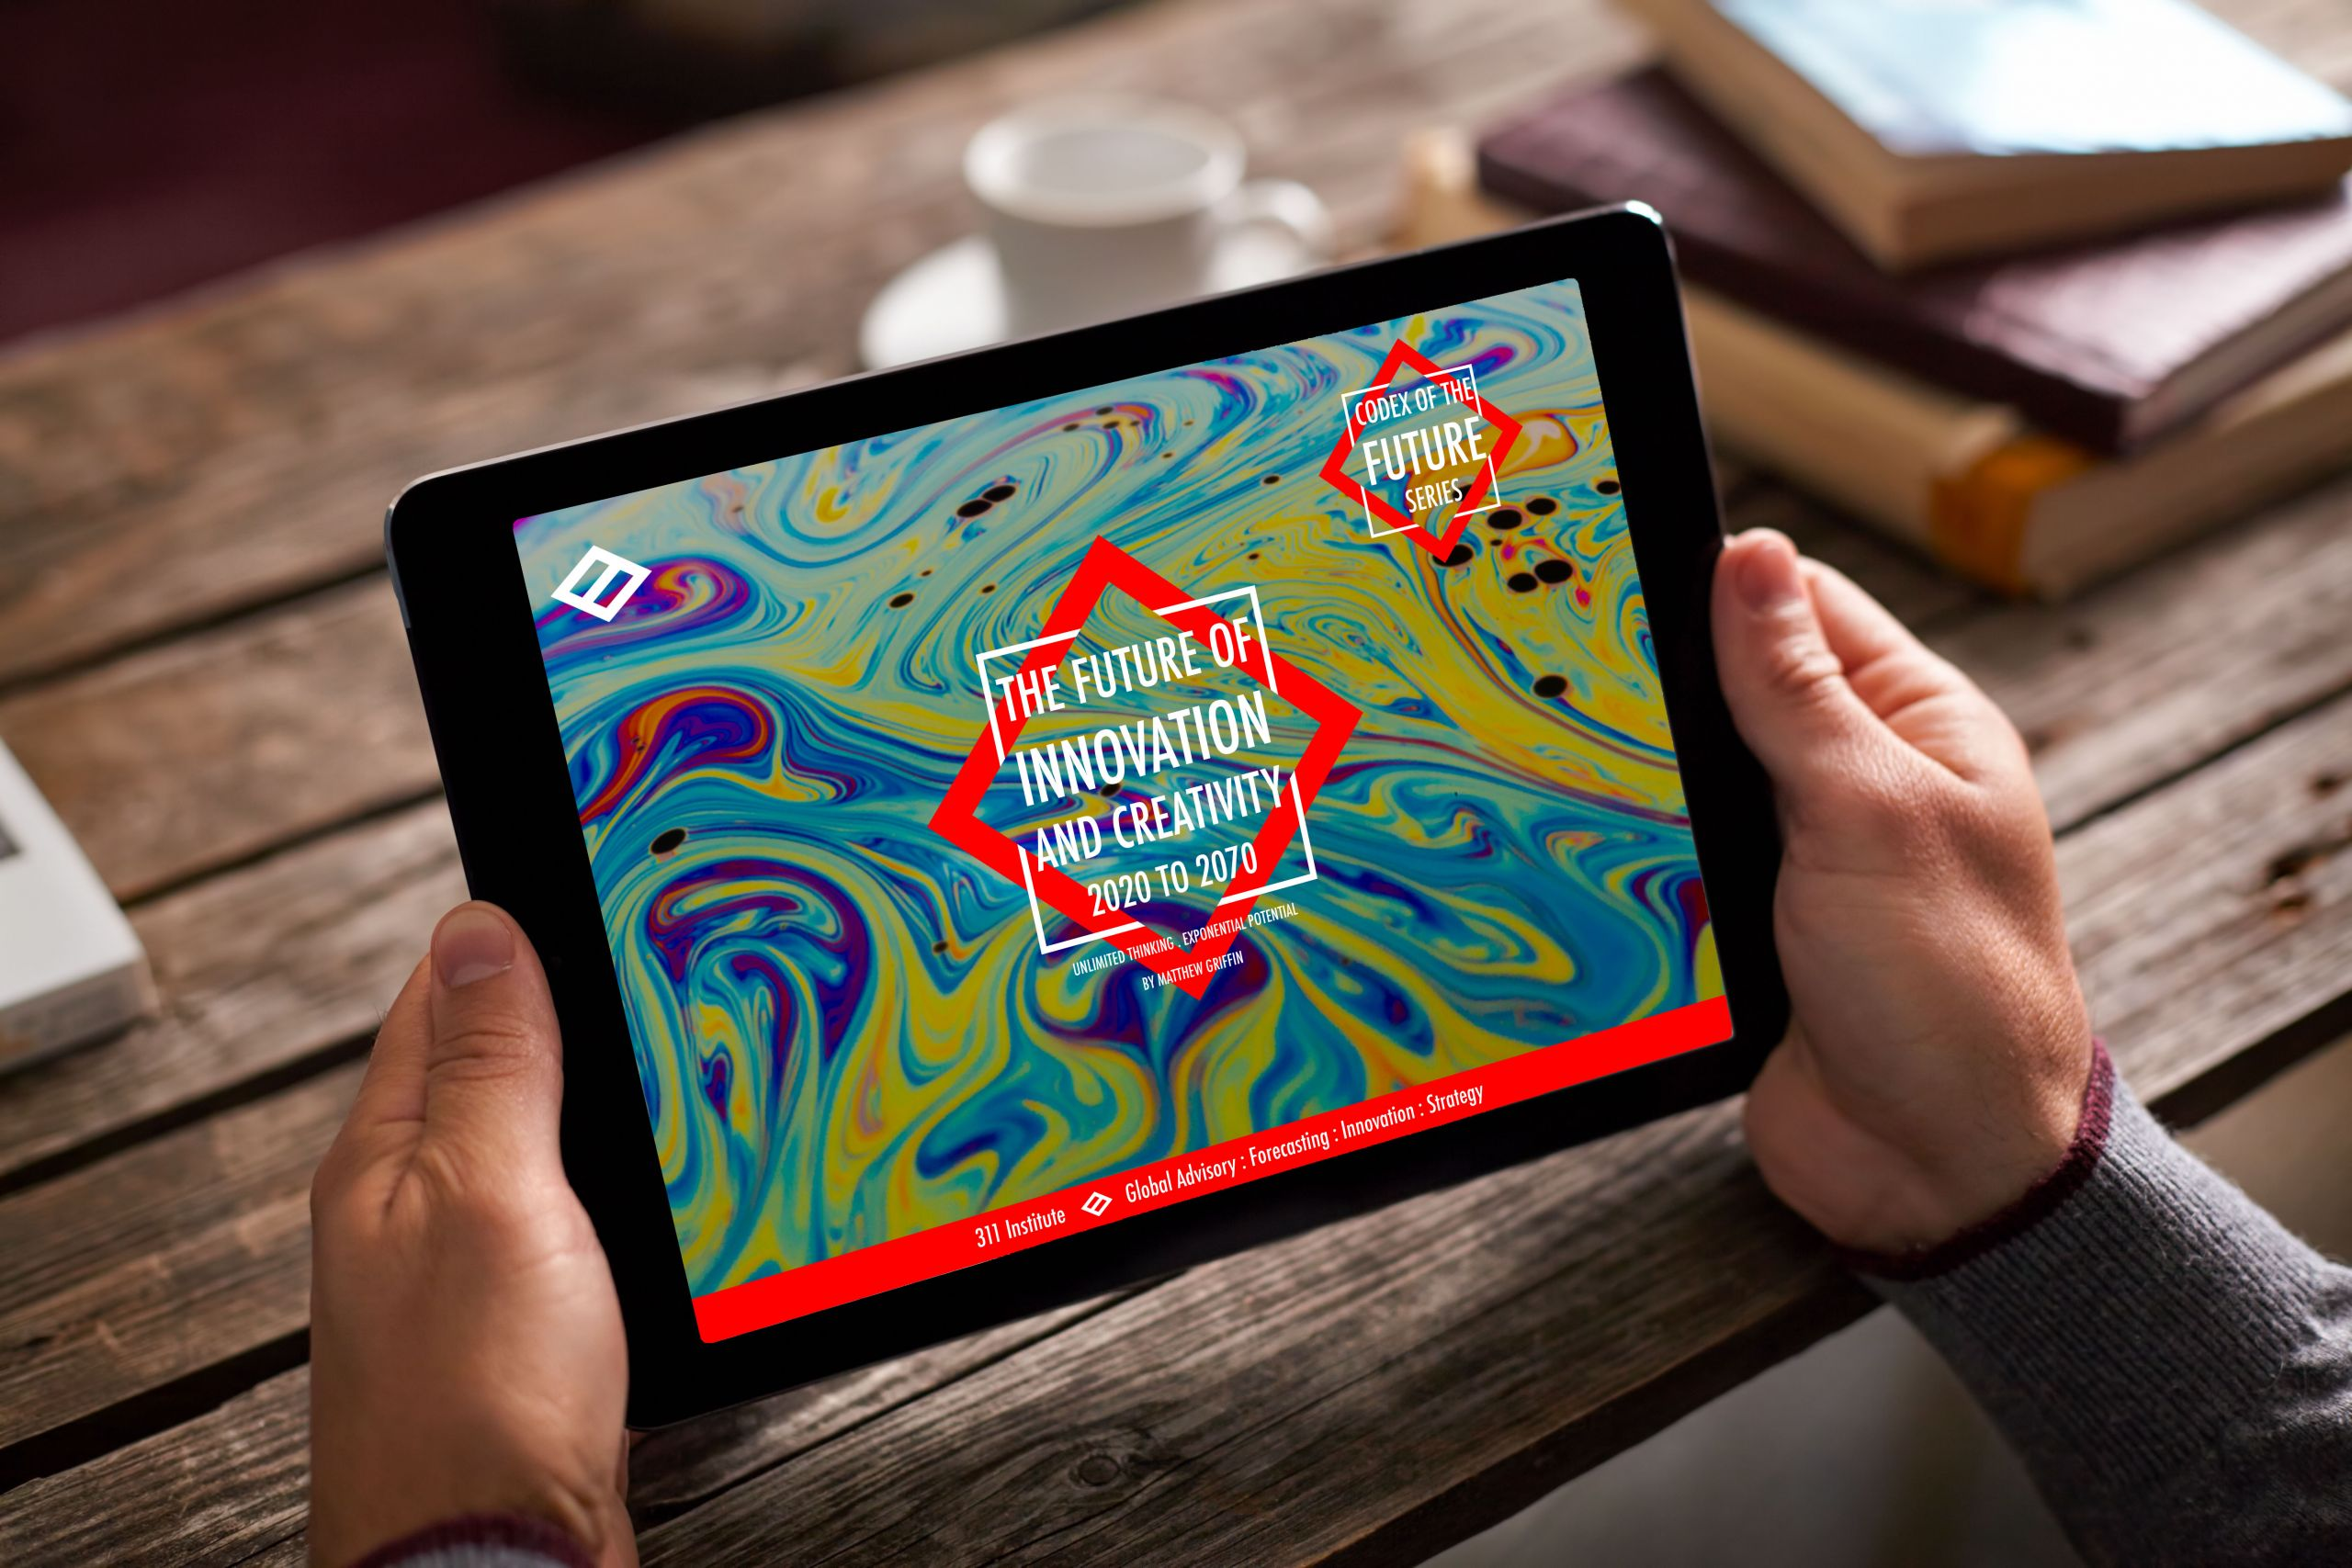 Future of creativity and innovation On IPad